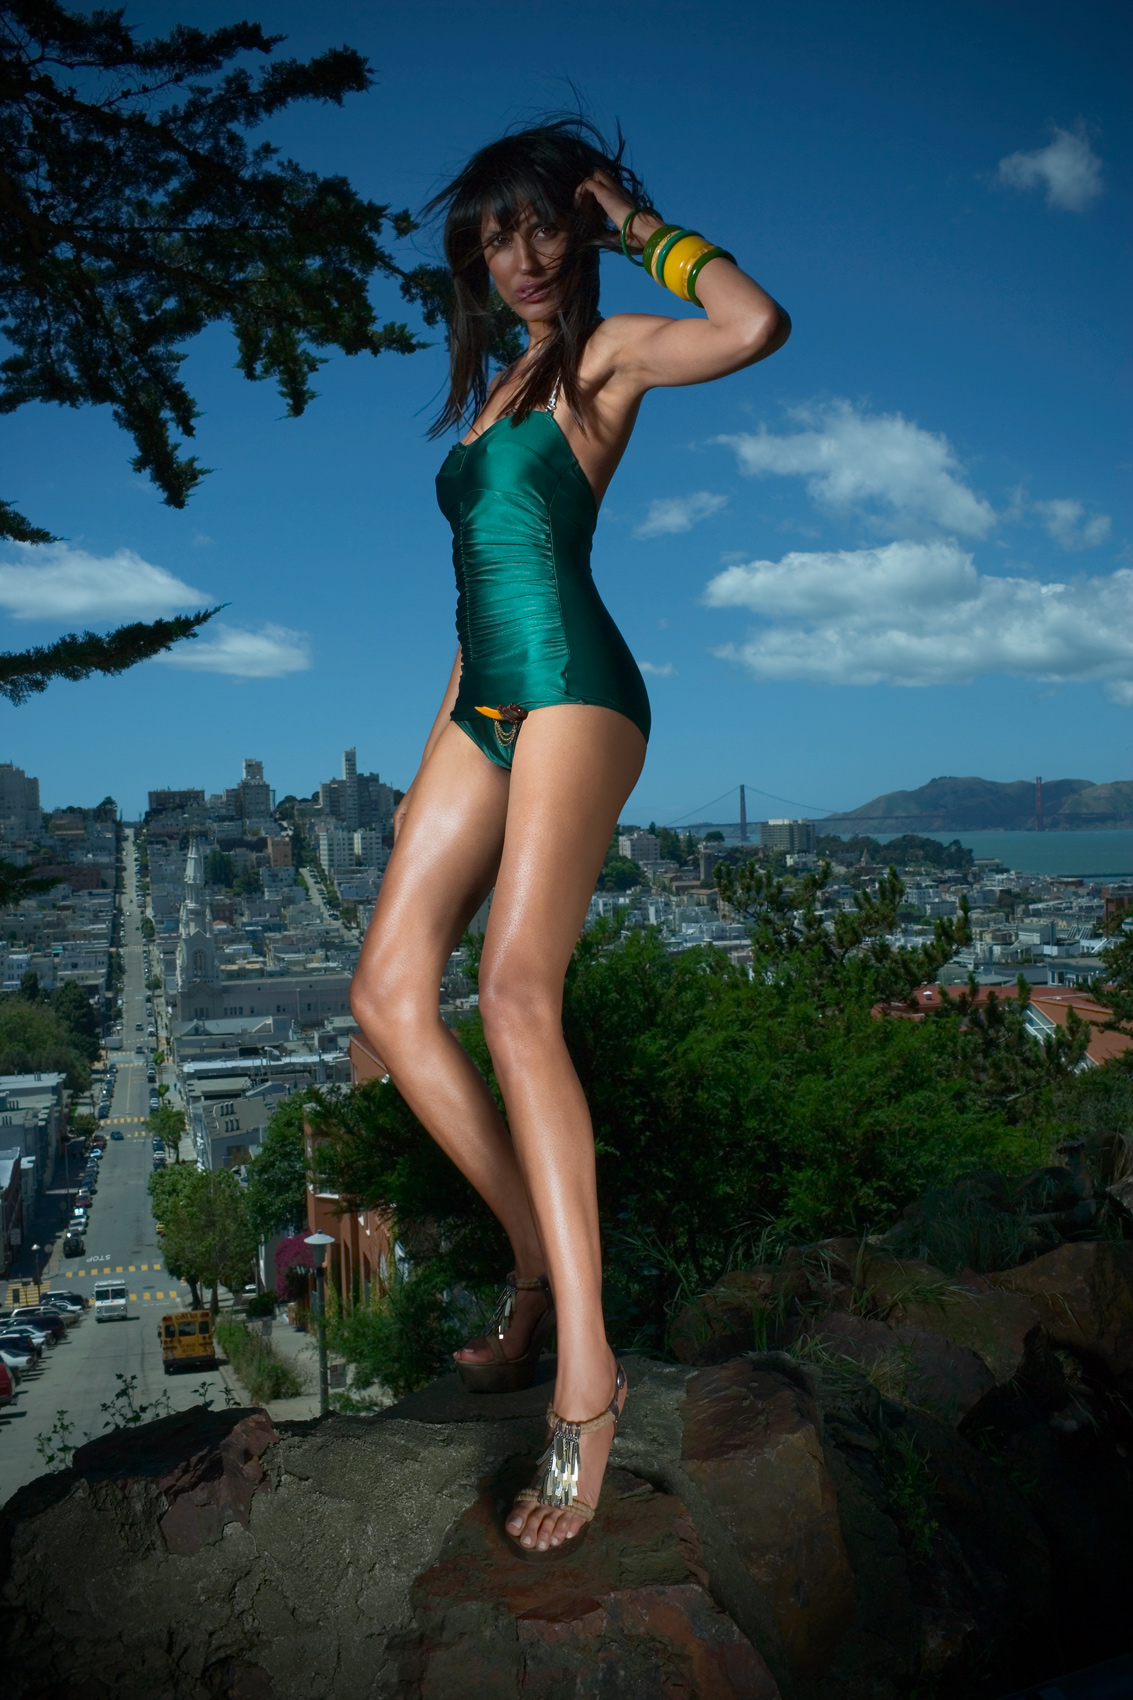 Musilek_Stan_Swimsuit_Model_San_Francisco